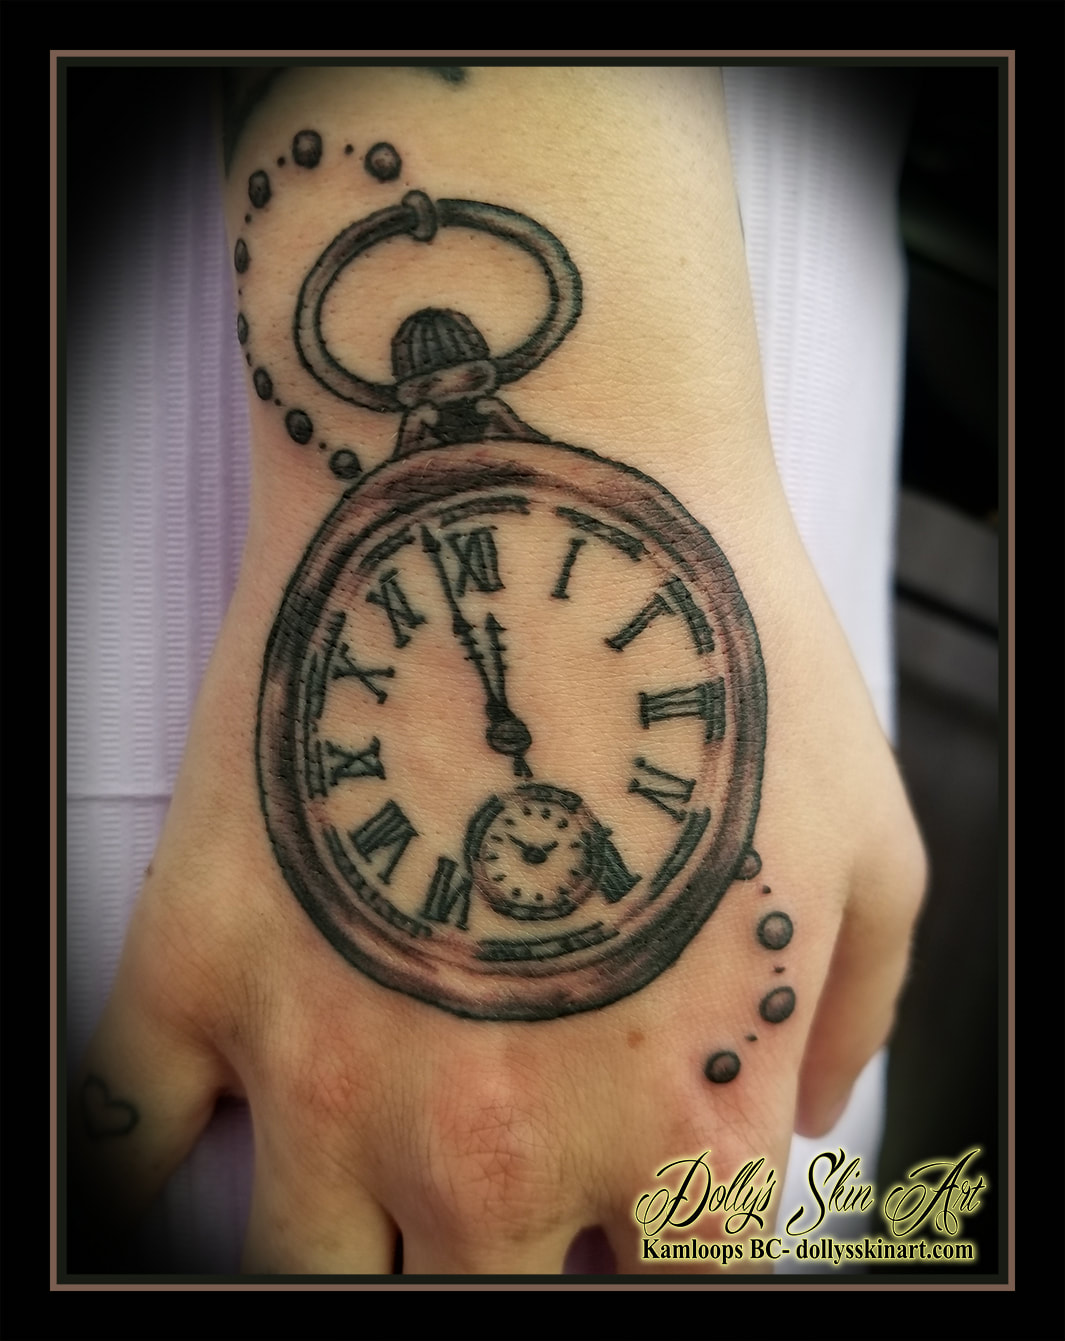 pocket watch tattoo hand black and grey shading clock tattoo kamloops dolly's skin art